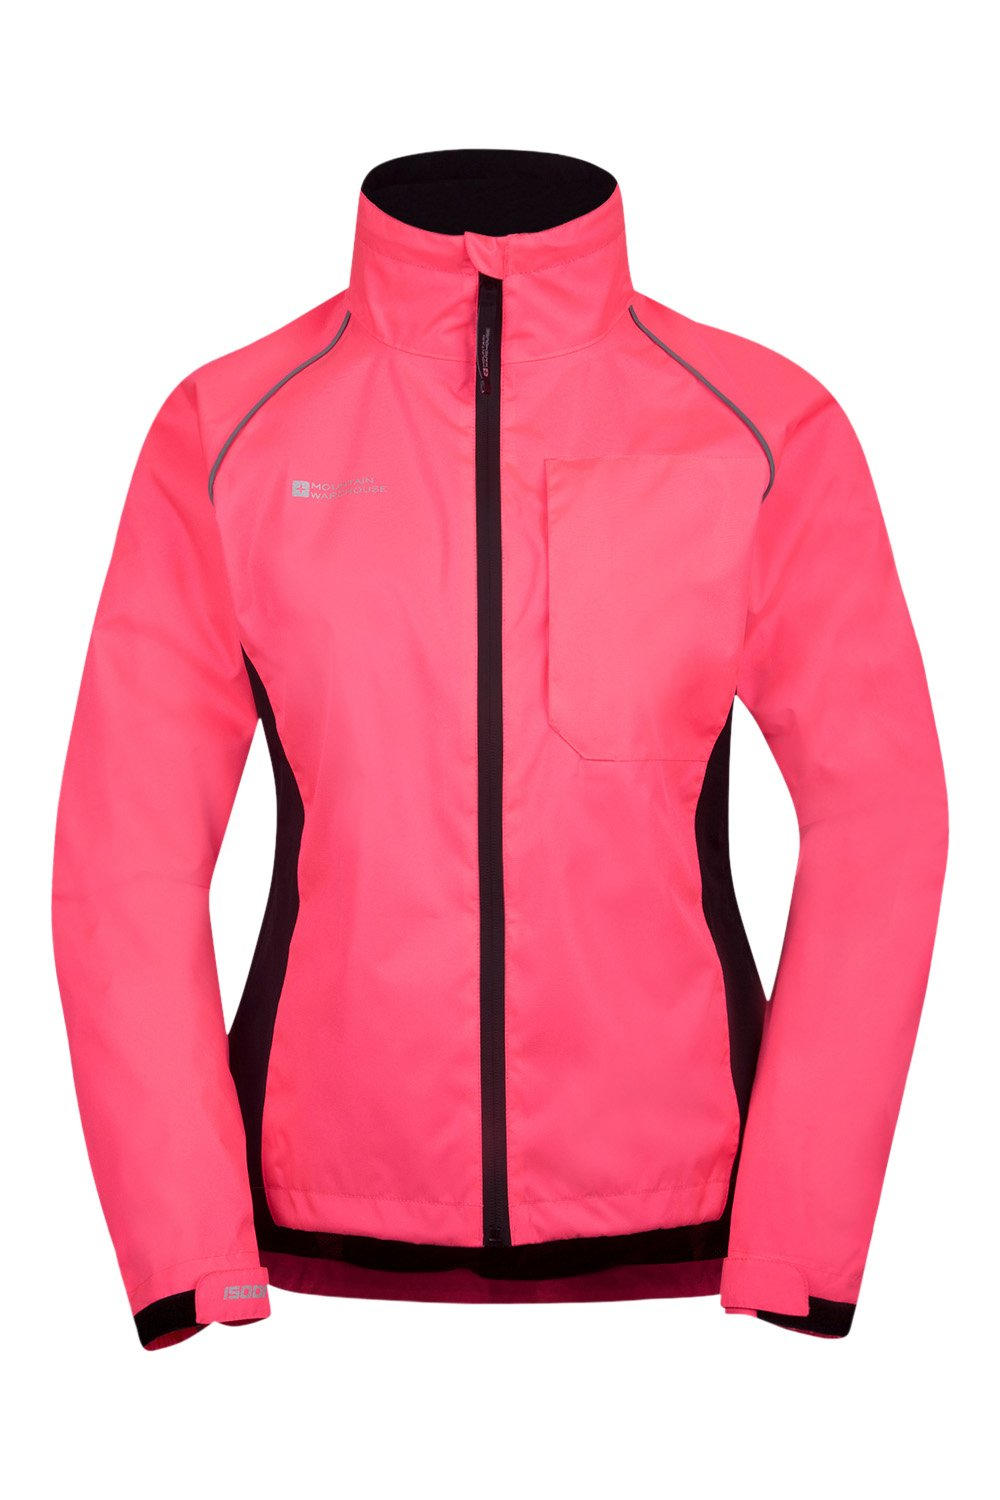 Mountain Warehouse Adrenaline Womens Jacket - Breathable Ladies Jacket, Taped Seams, Waterproof Raincoat, High Viz All Season Coat - For Cycling, Running